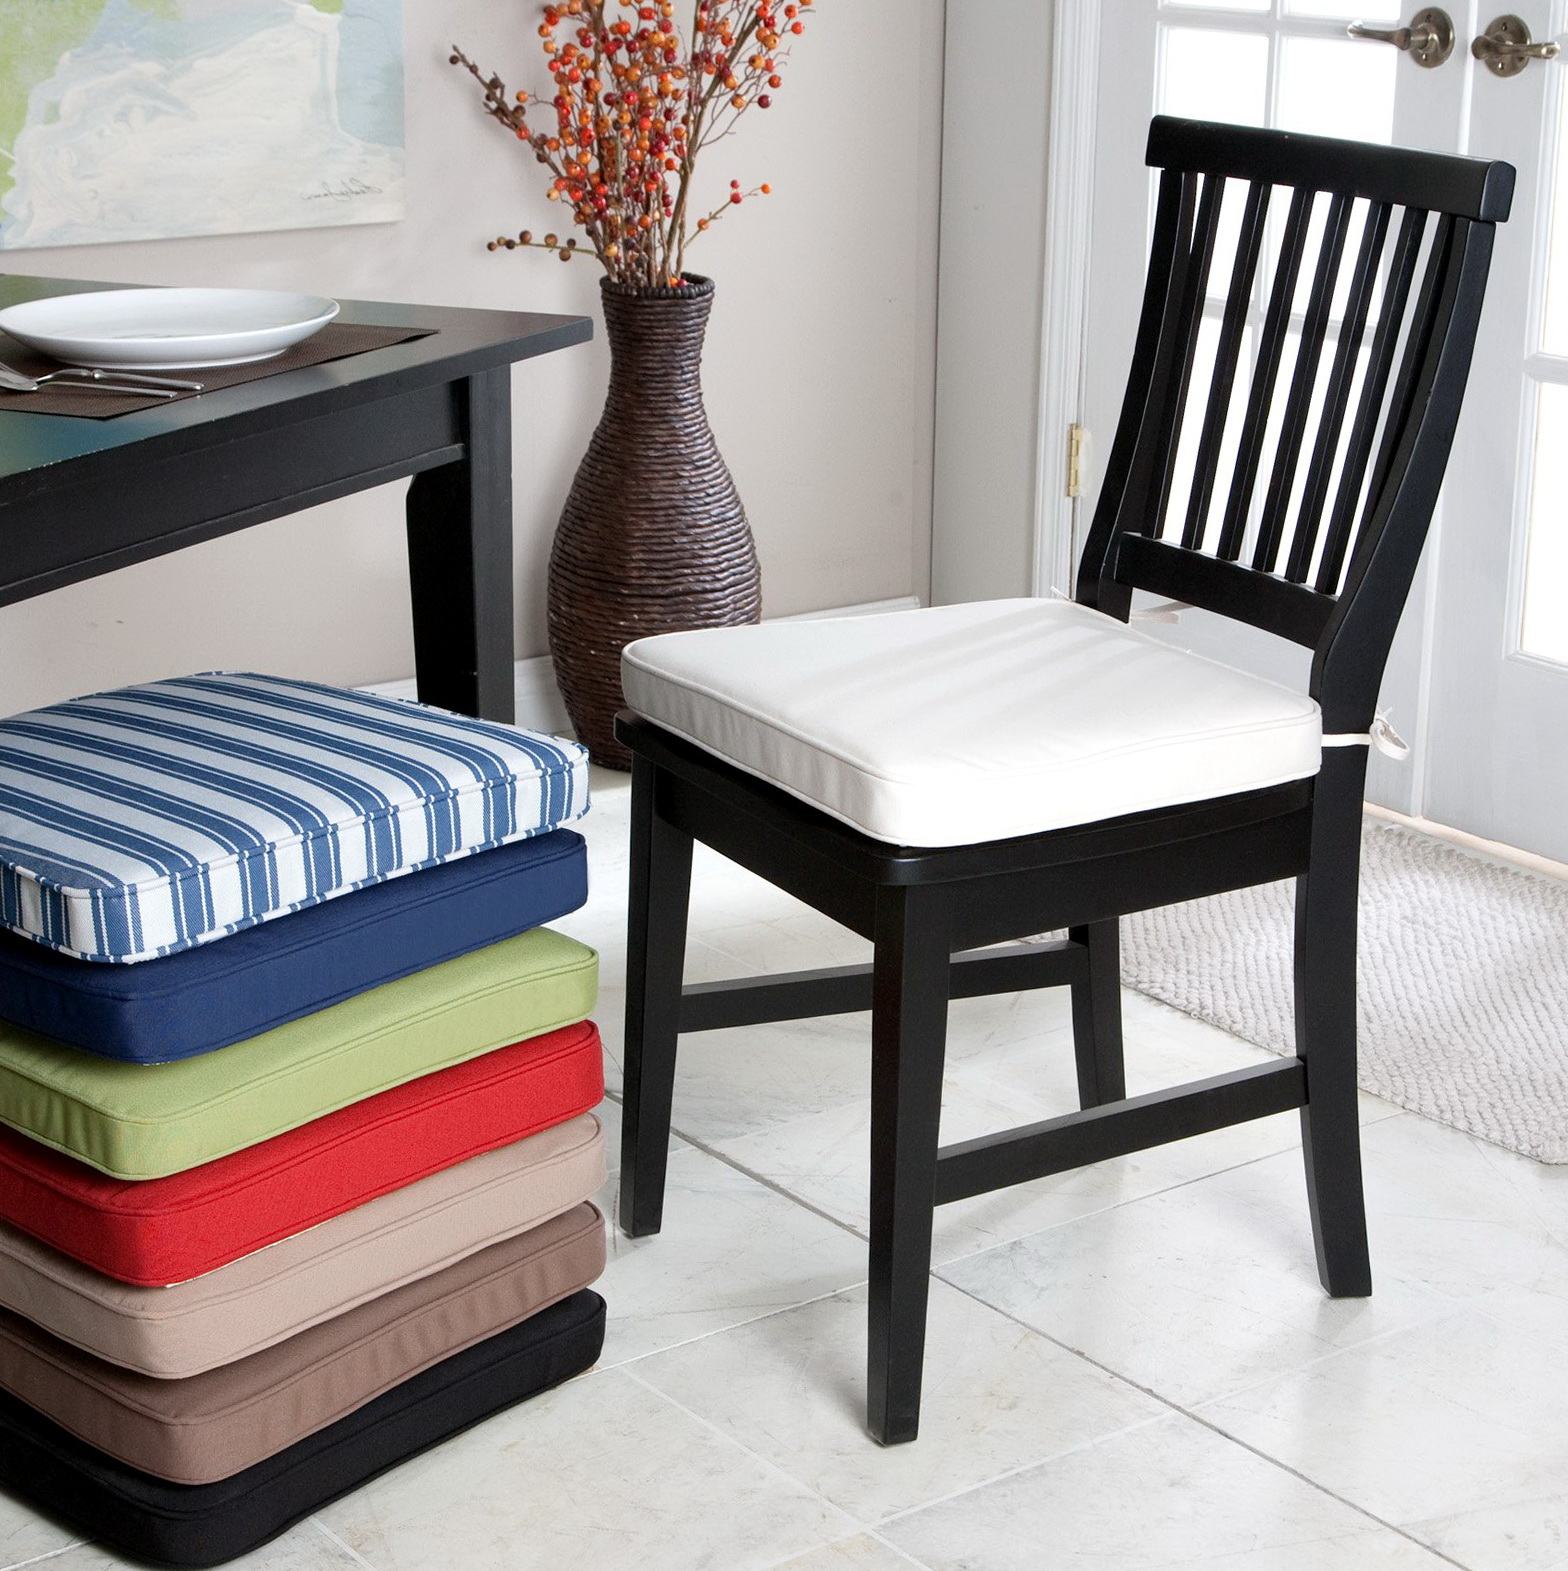 Seat Cushions For Dining Chairs